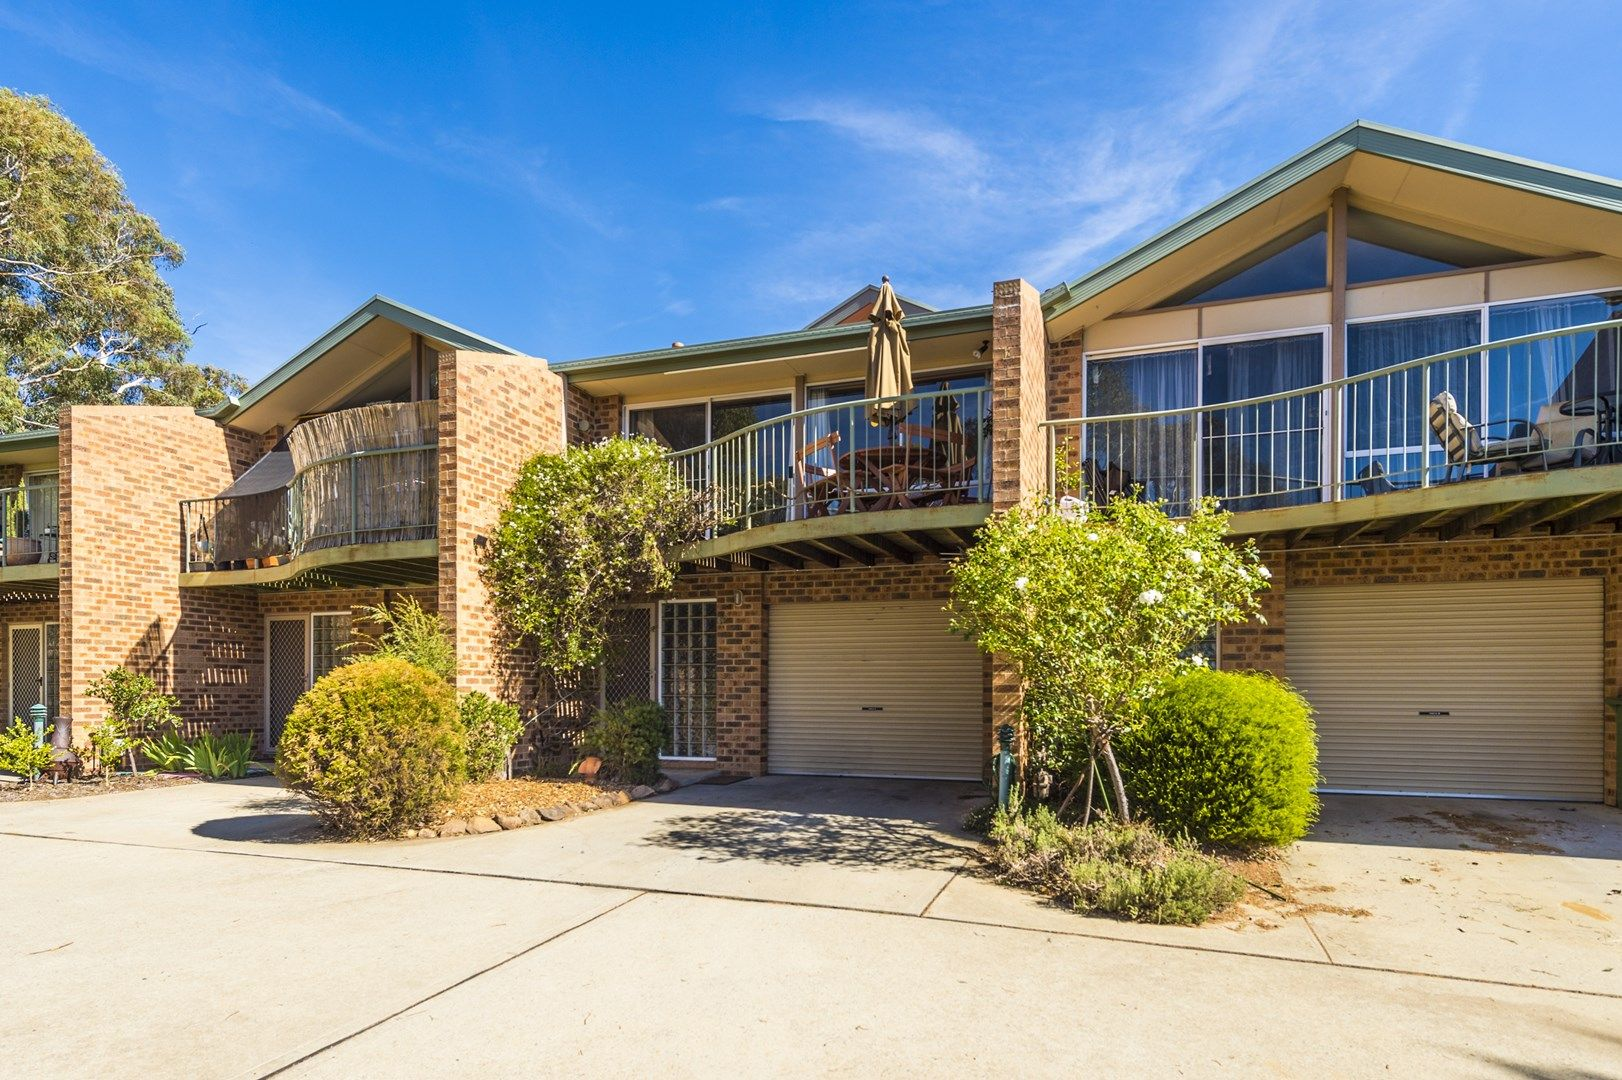 12/3 Winchester Place, Queanbeyan NSW 2620, Image 0